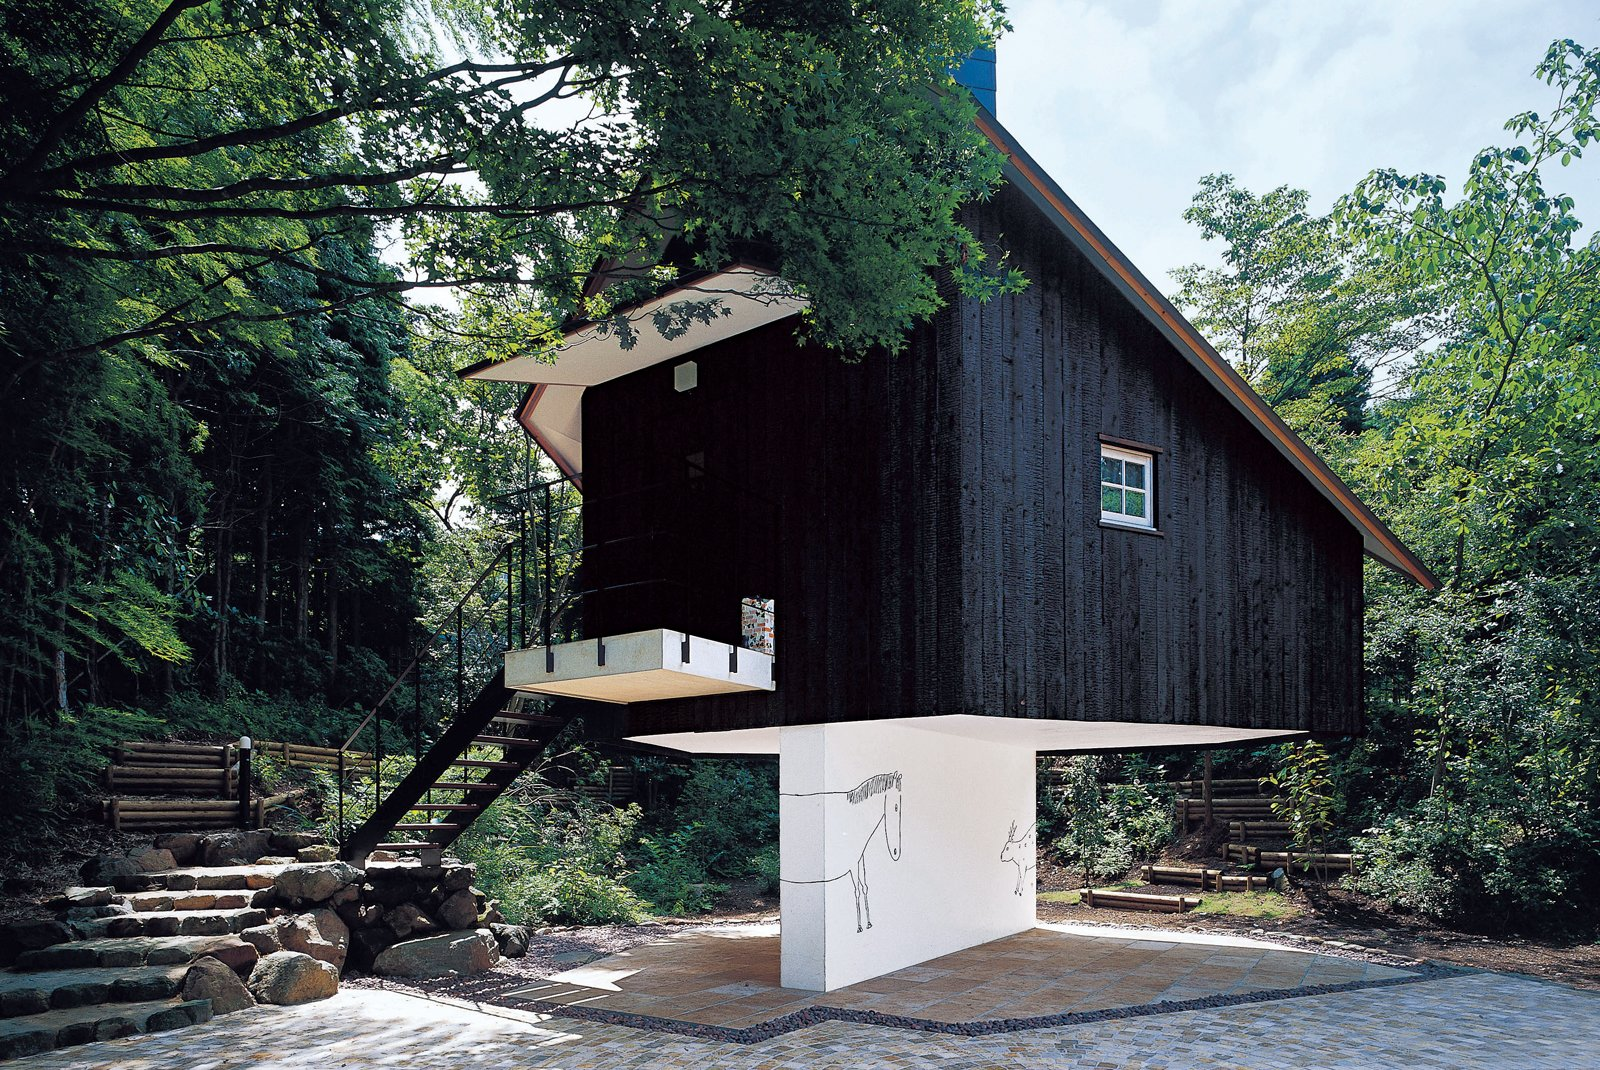 Fujimori has an affinity for building structures that appear to be perched precariously: His charred cedar-clad Guest House seems to balance on a sliver of a wall.  Unique Tokyo-Based Architects by Kate Santos from Terunobu Fujimori